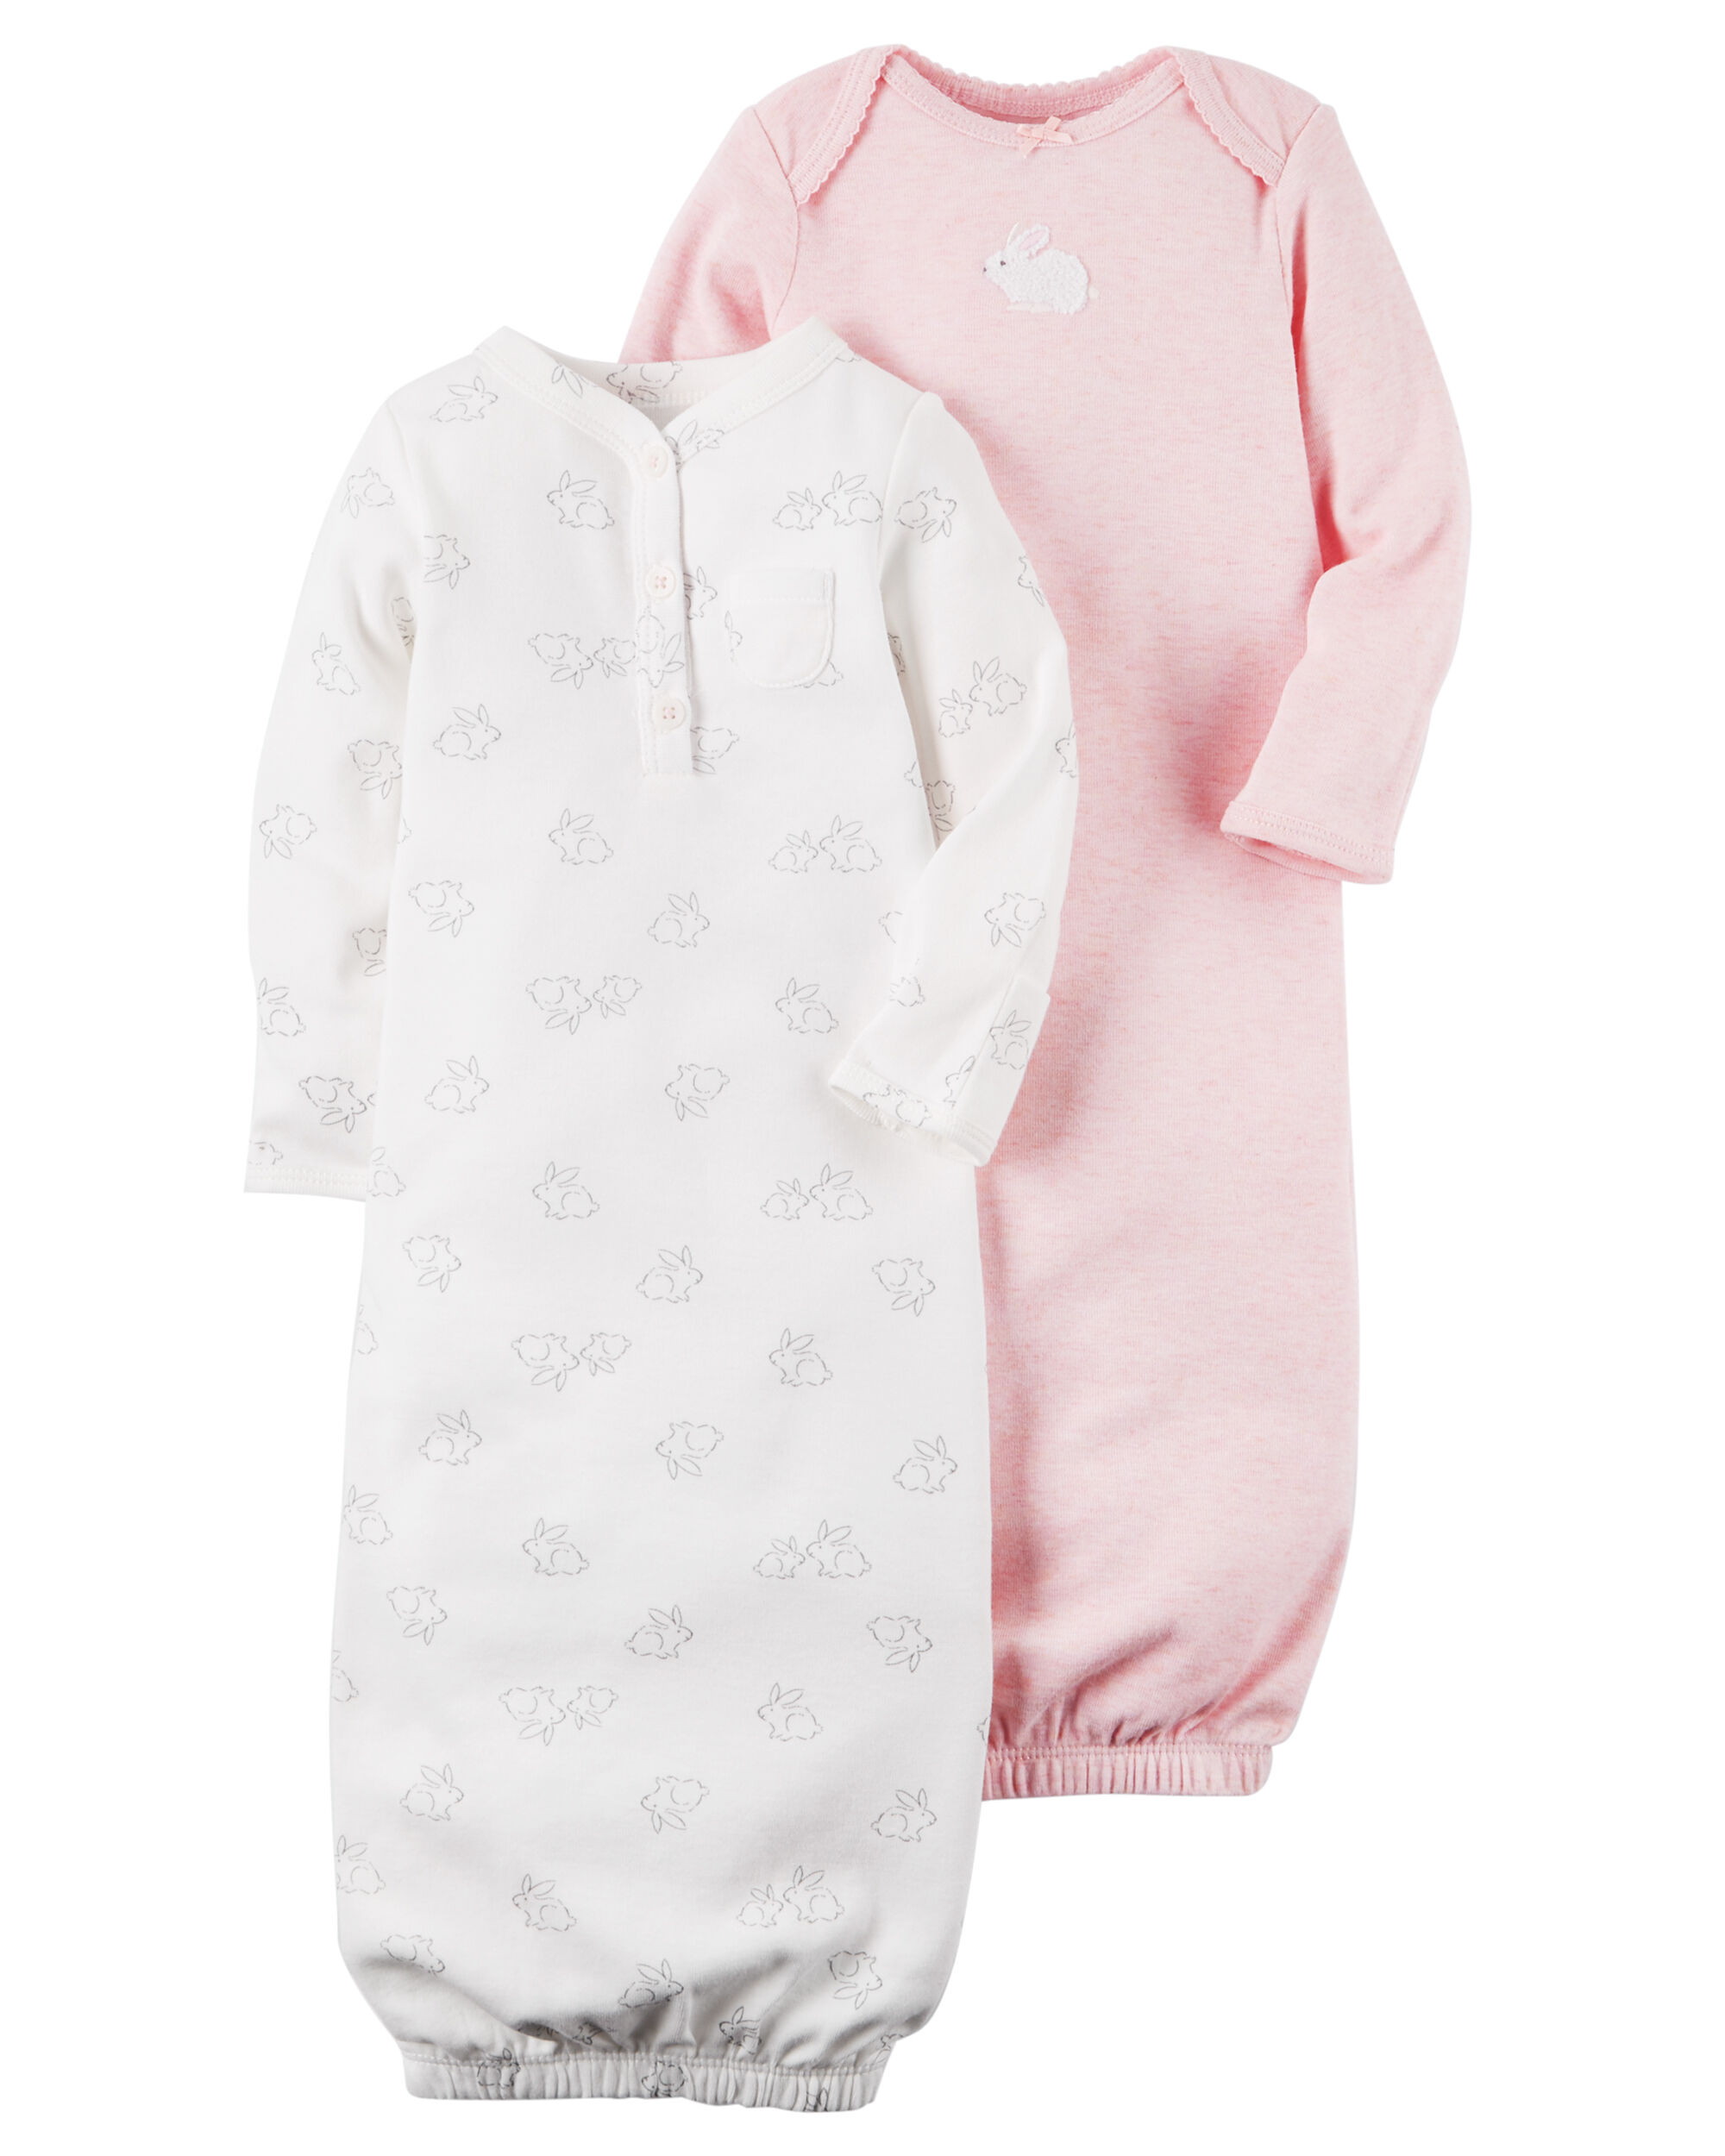 2-Pack Babysoft Heathered Sleeper Gowns | Carters.com